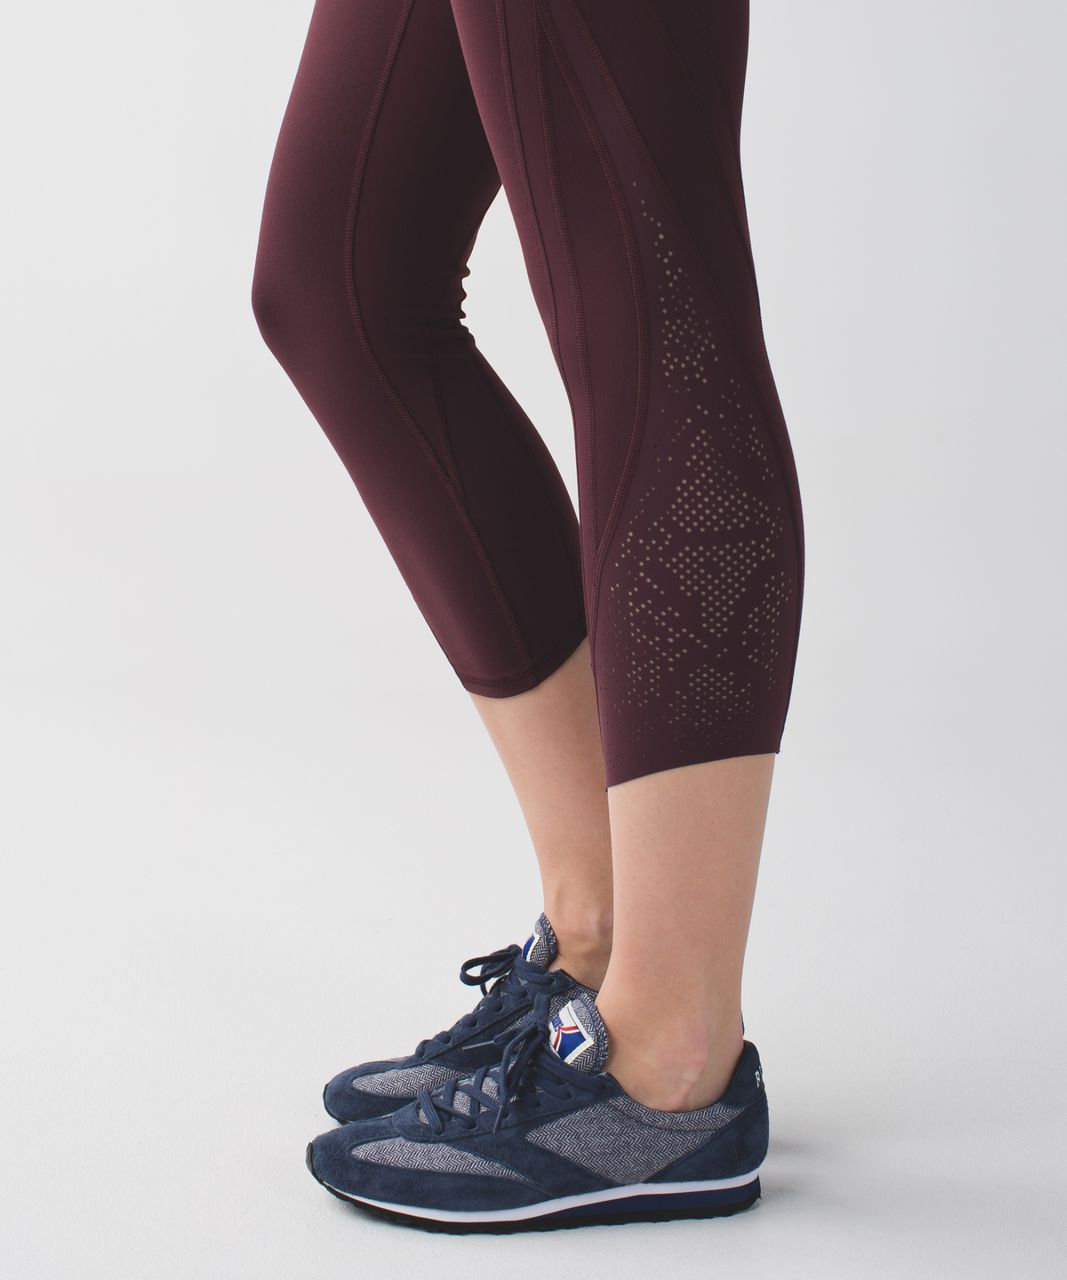 Lululemon Wunder Under Crop (Laser) *Full-On Luon - Bordeaux Drama